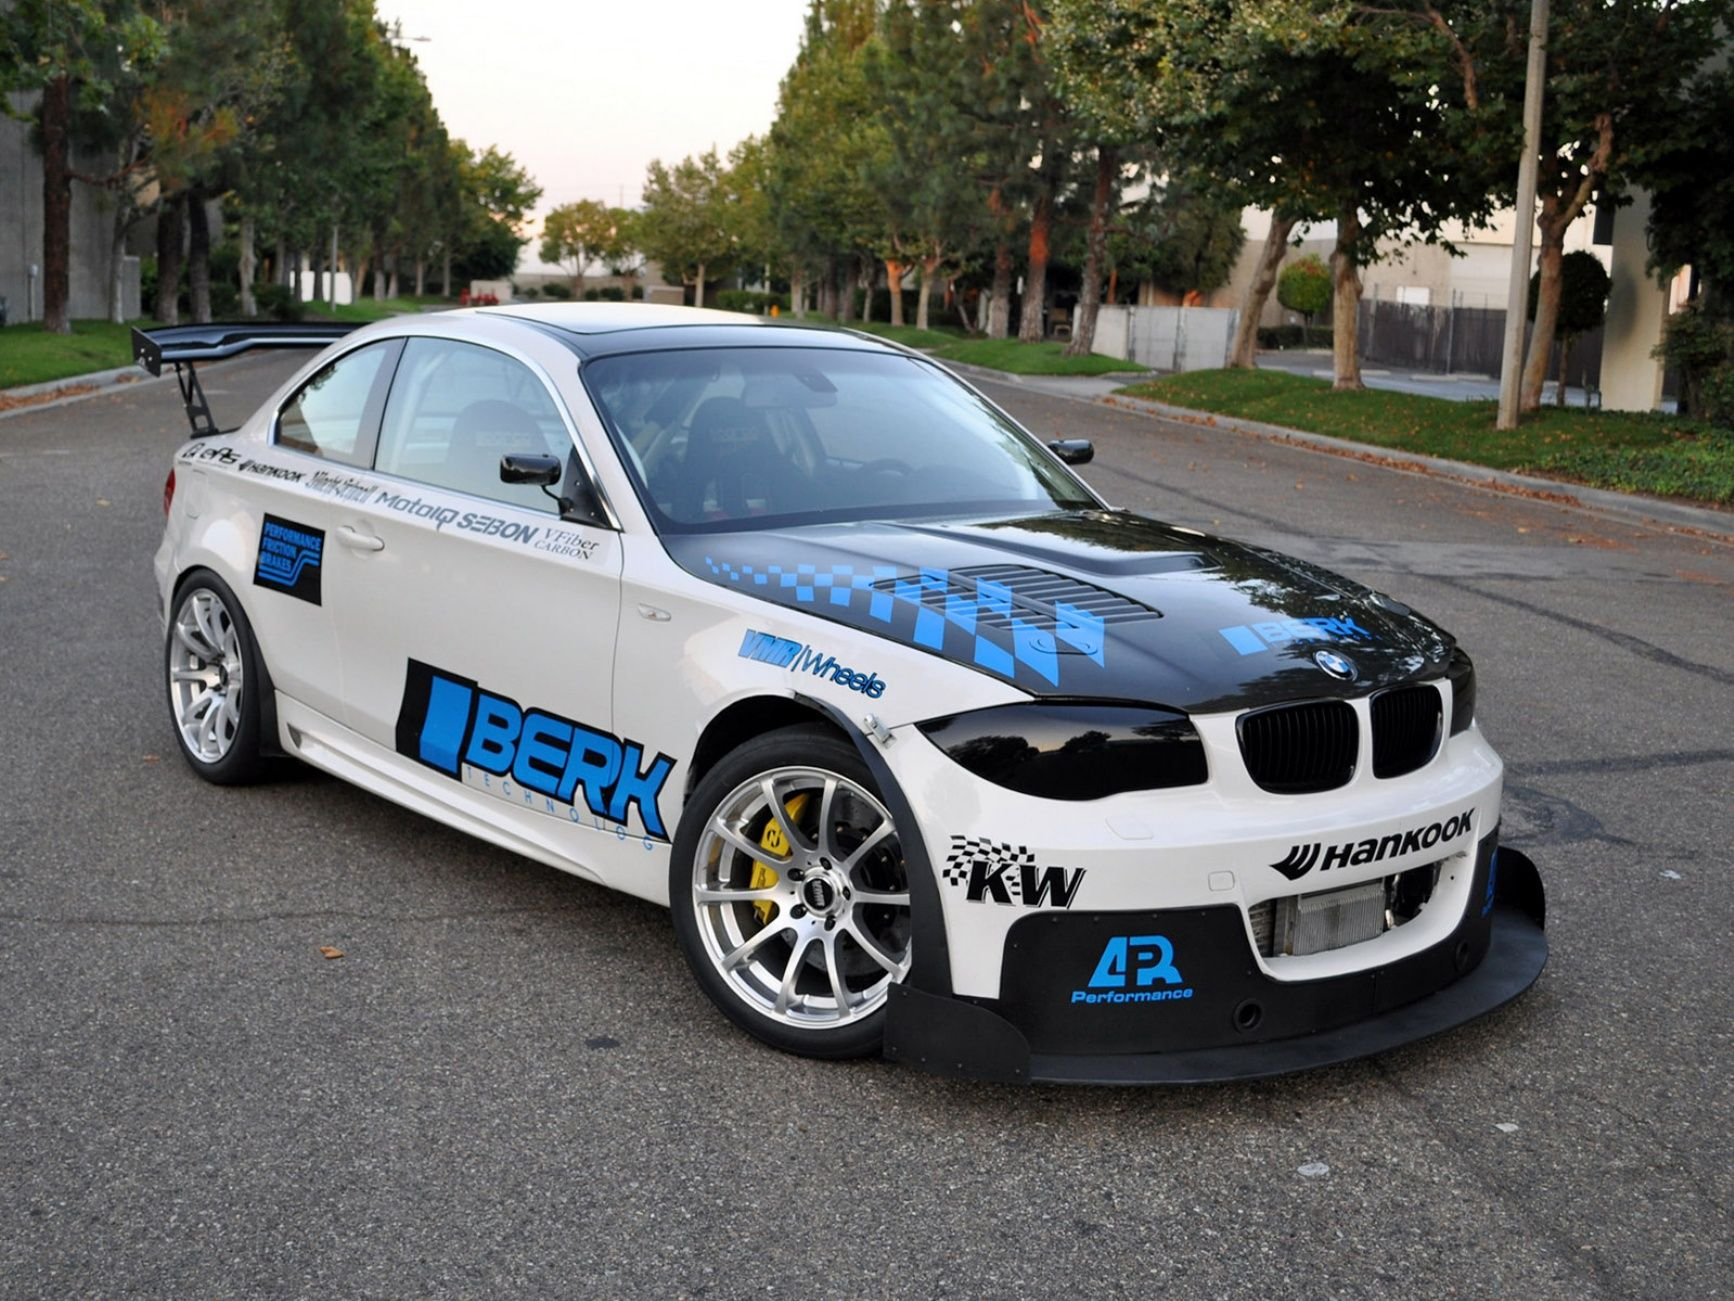 Bmw 1 Series E82 All Racing Cars Bimmer Bmw 1 Series Bmw Cars